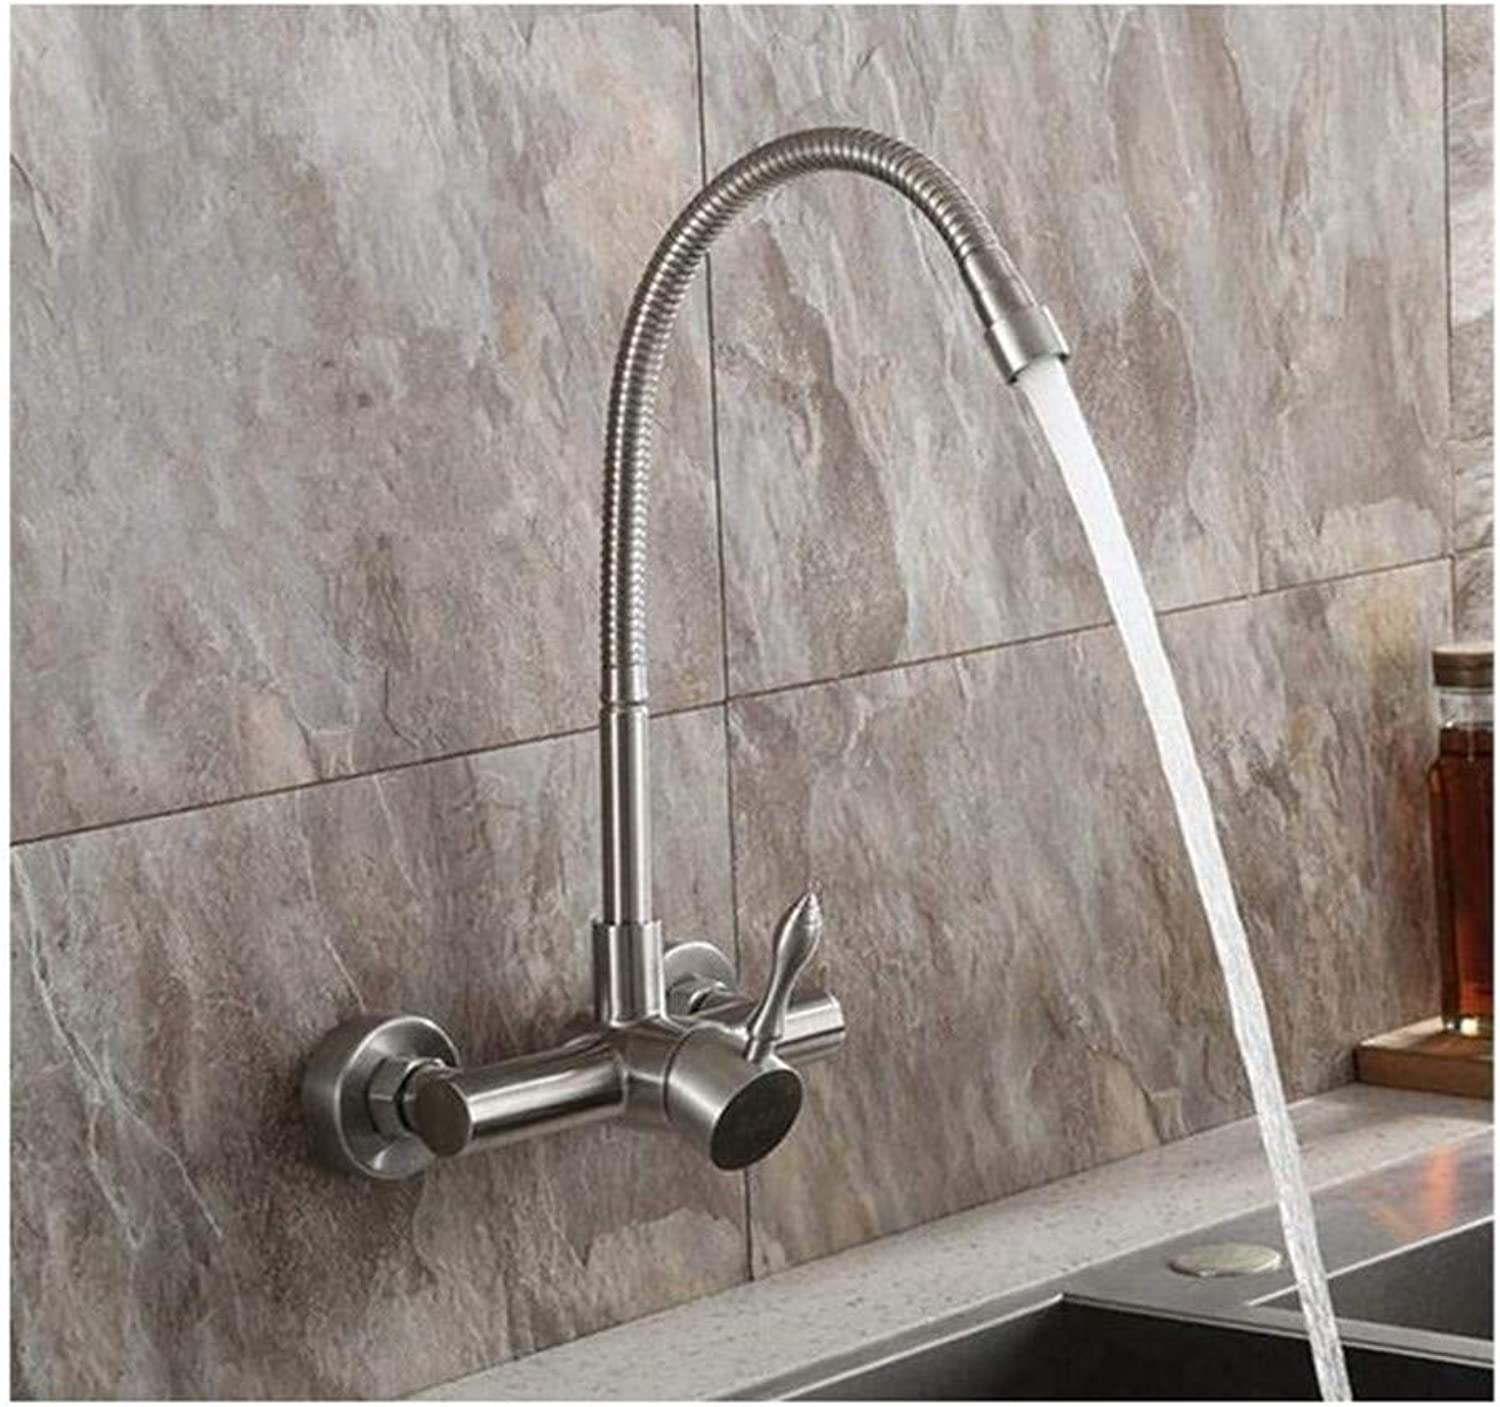 Muzyo Kitchen Faucet Polished Chrome Stainless Steel Double hole into the wall Sink Tap, 2